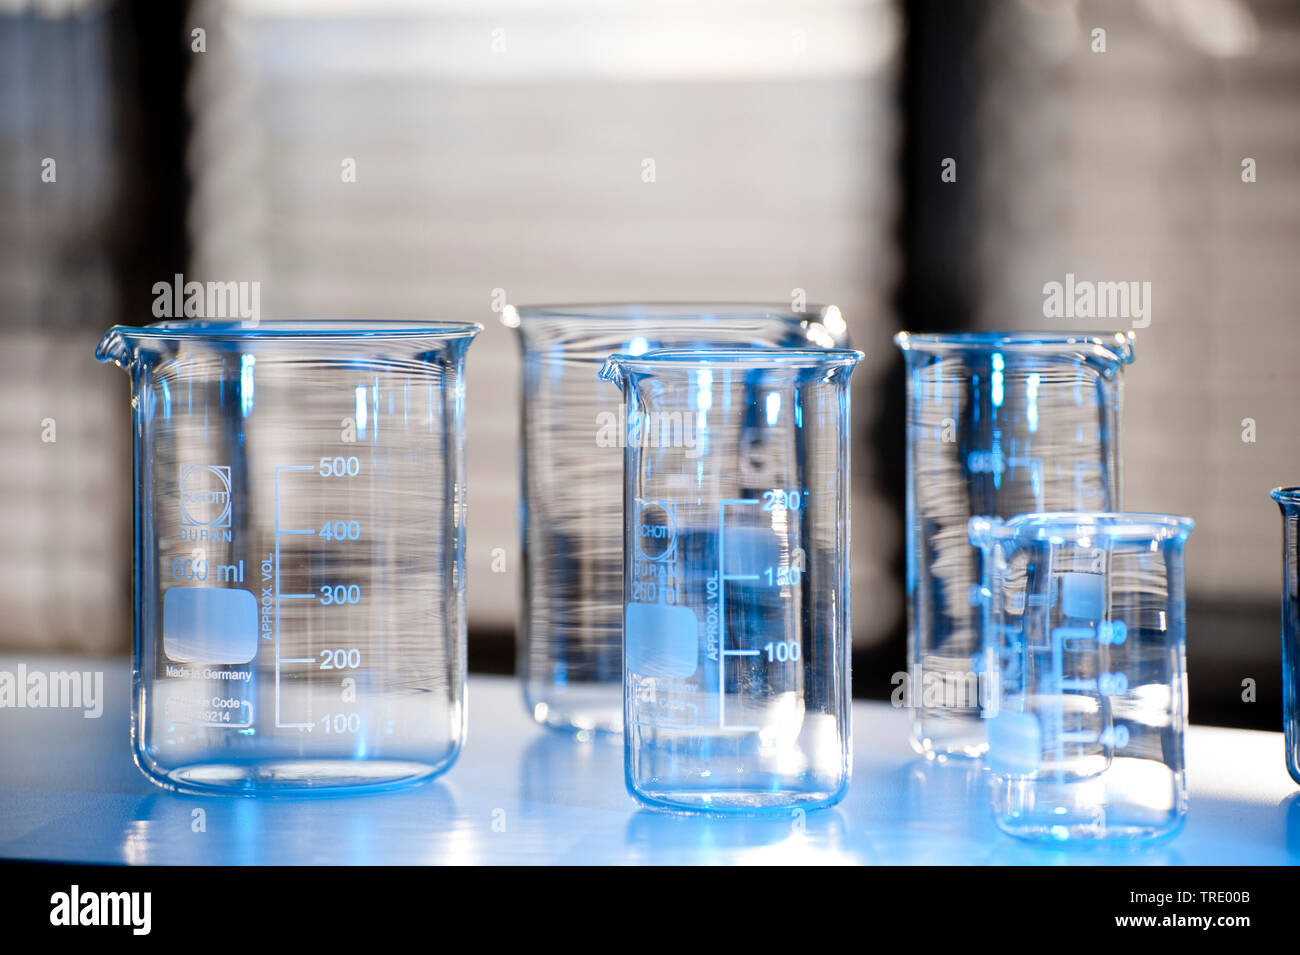 Detail serveral empty beaker glasses in different sizes on a bench Stock Photo